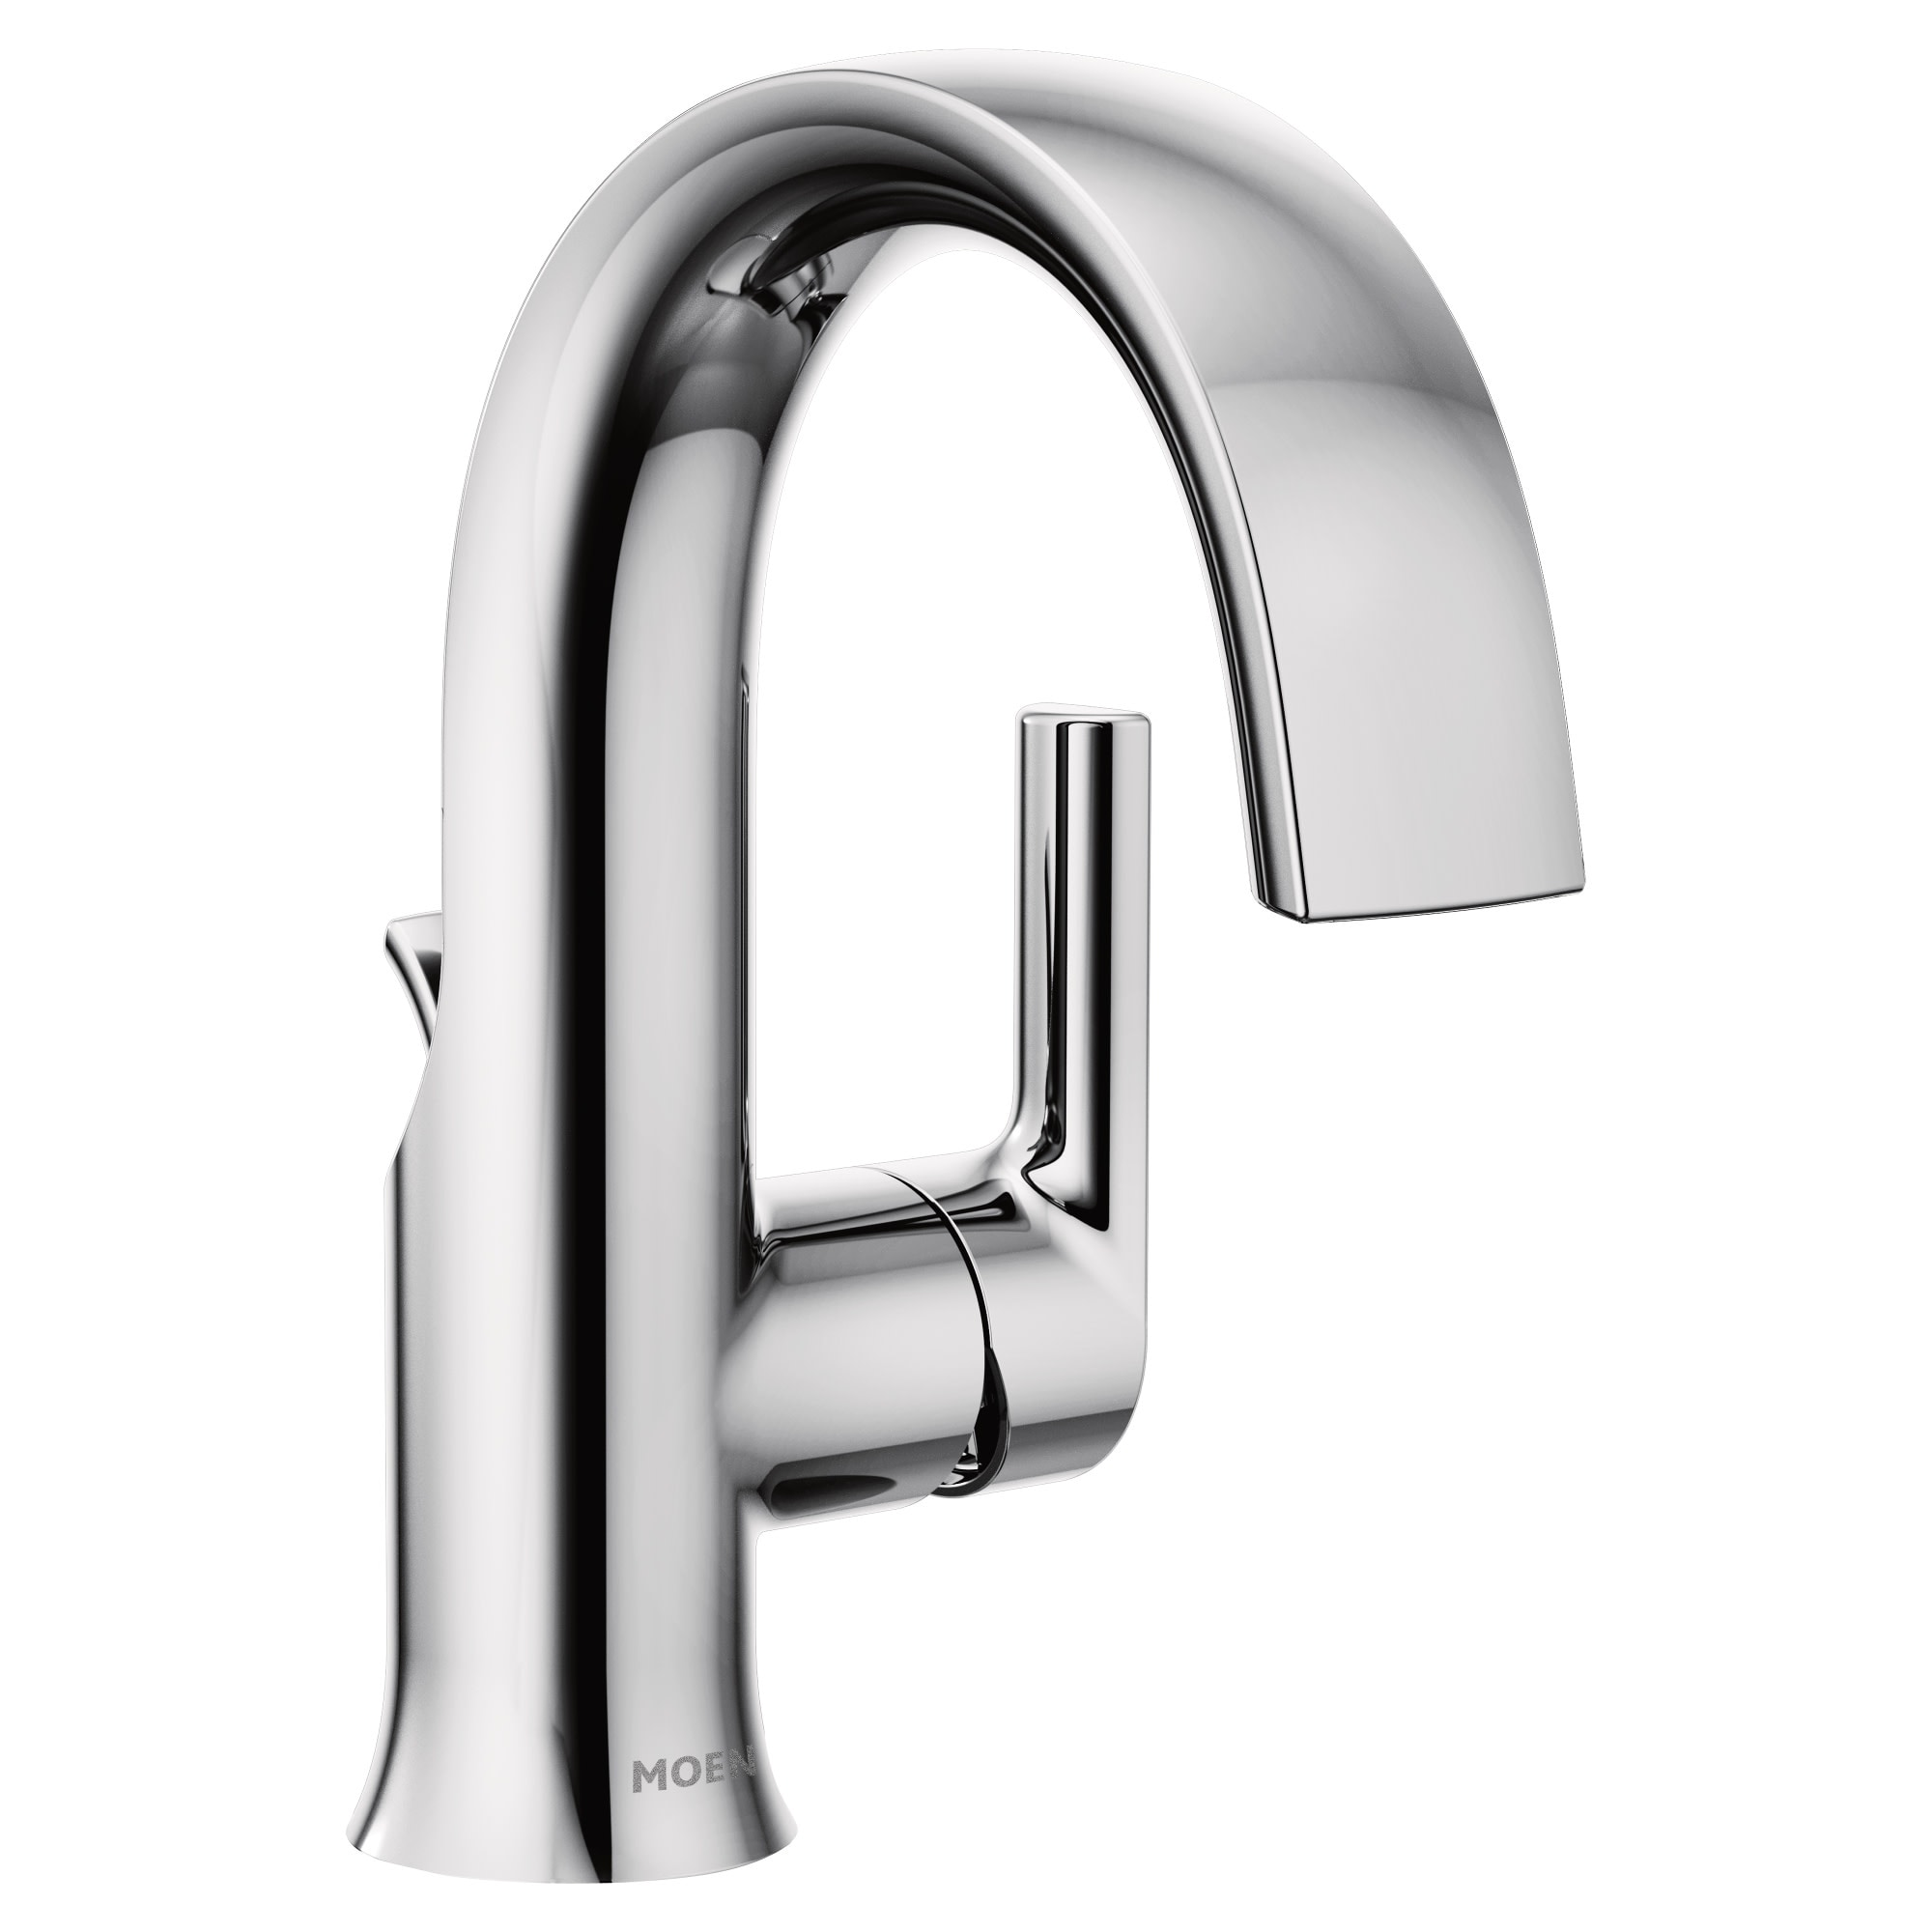 Moen S6910 Doux 1 2 Gpm Single Hole Bathroom Faucet With Pop Up Drain Overstock 25655801